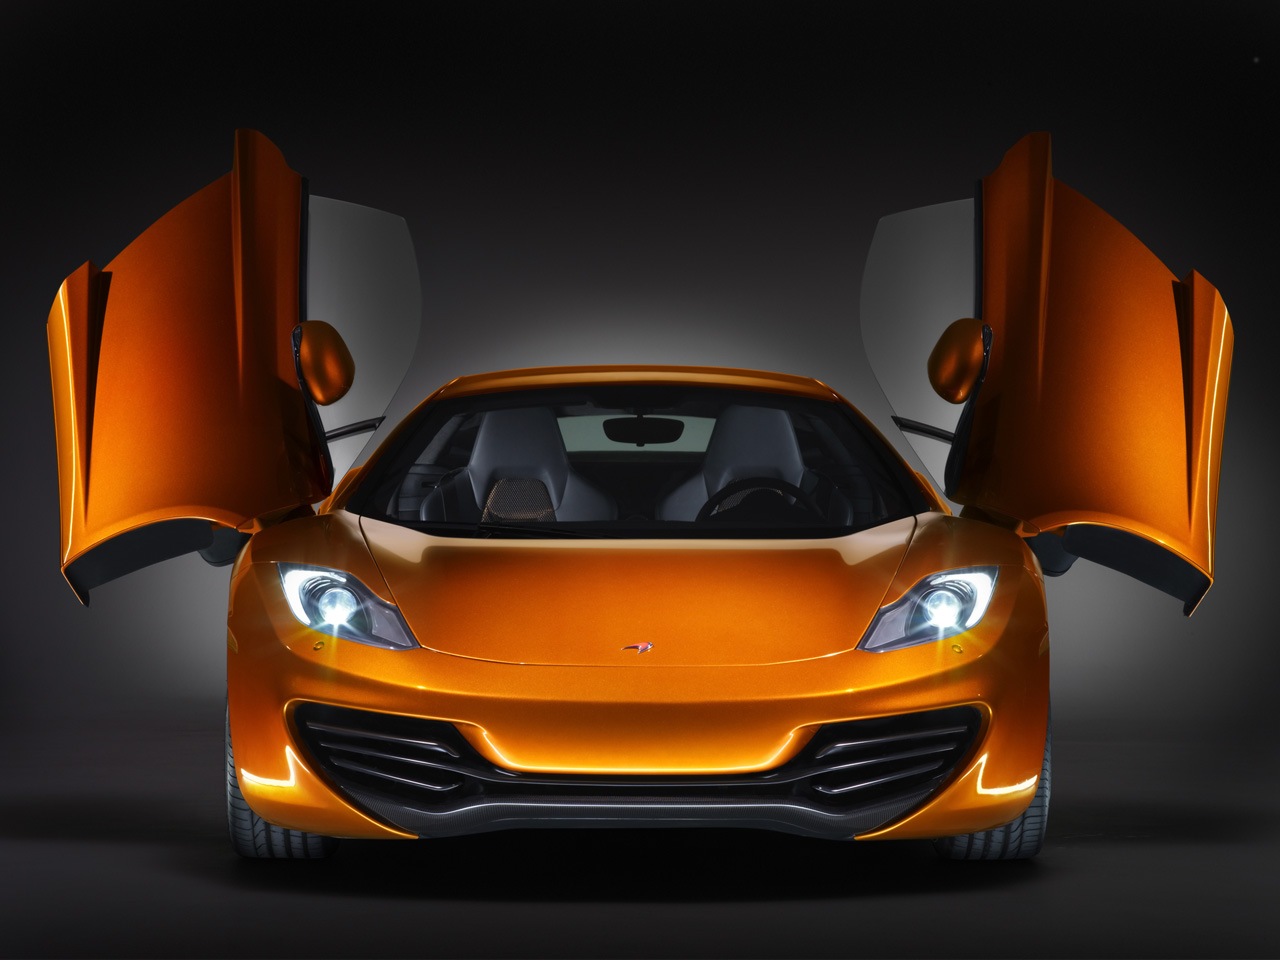 McLaren launches pre-owned vehicle program